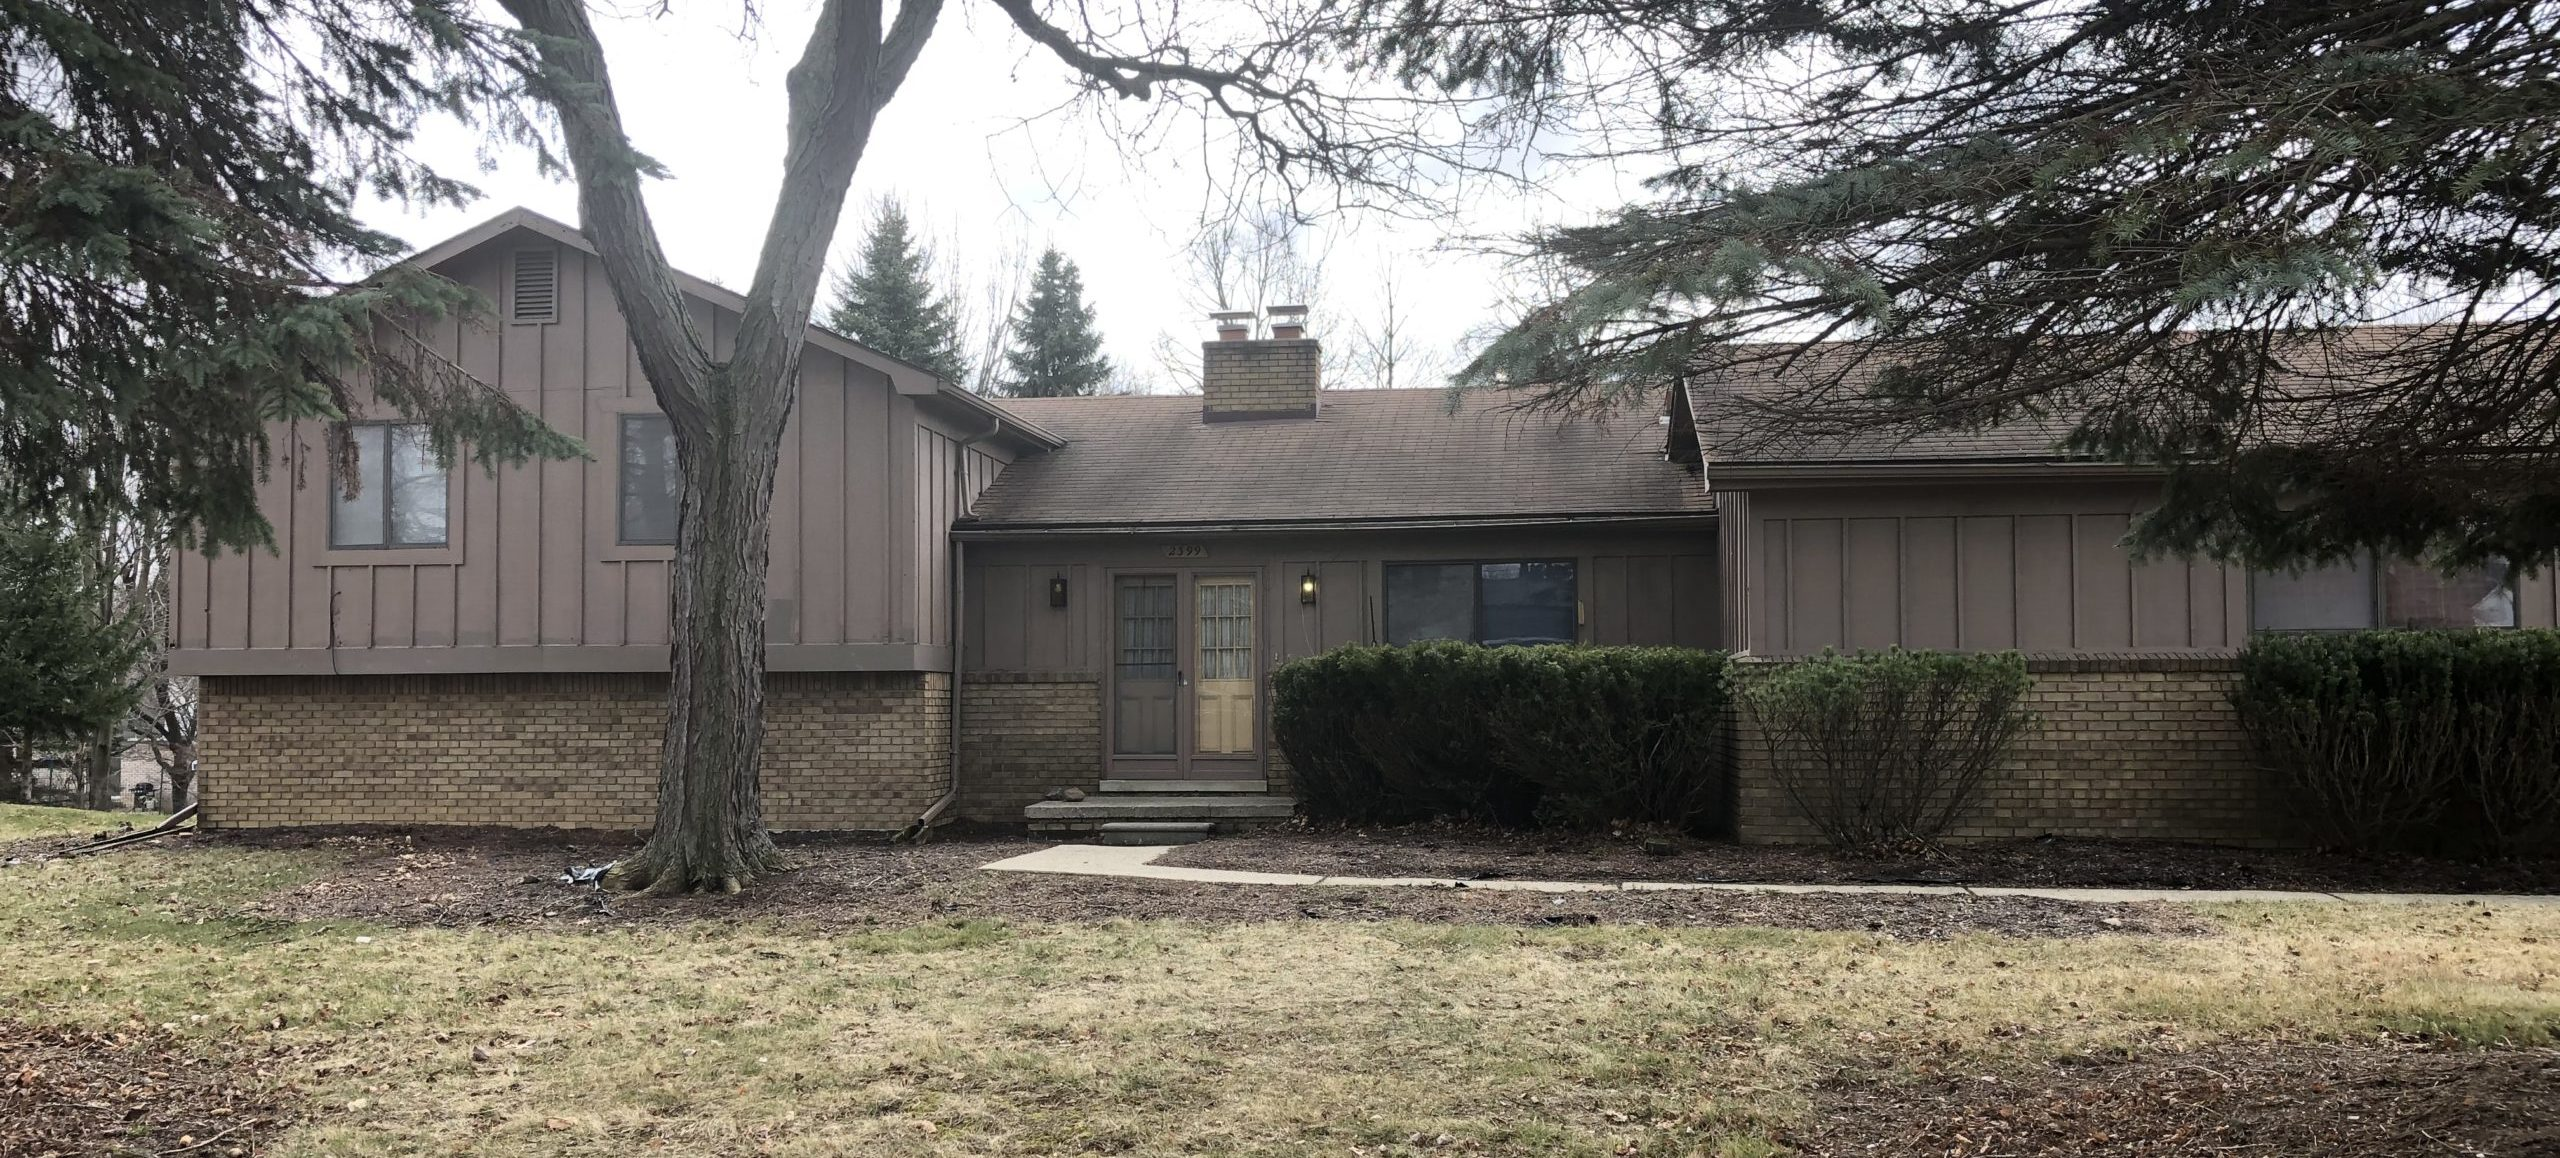 PROPERTY COMING SOON! 2399 Hillendale Dr. Rochester Hills